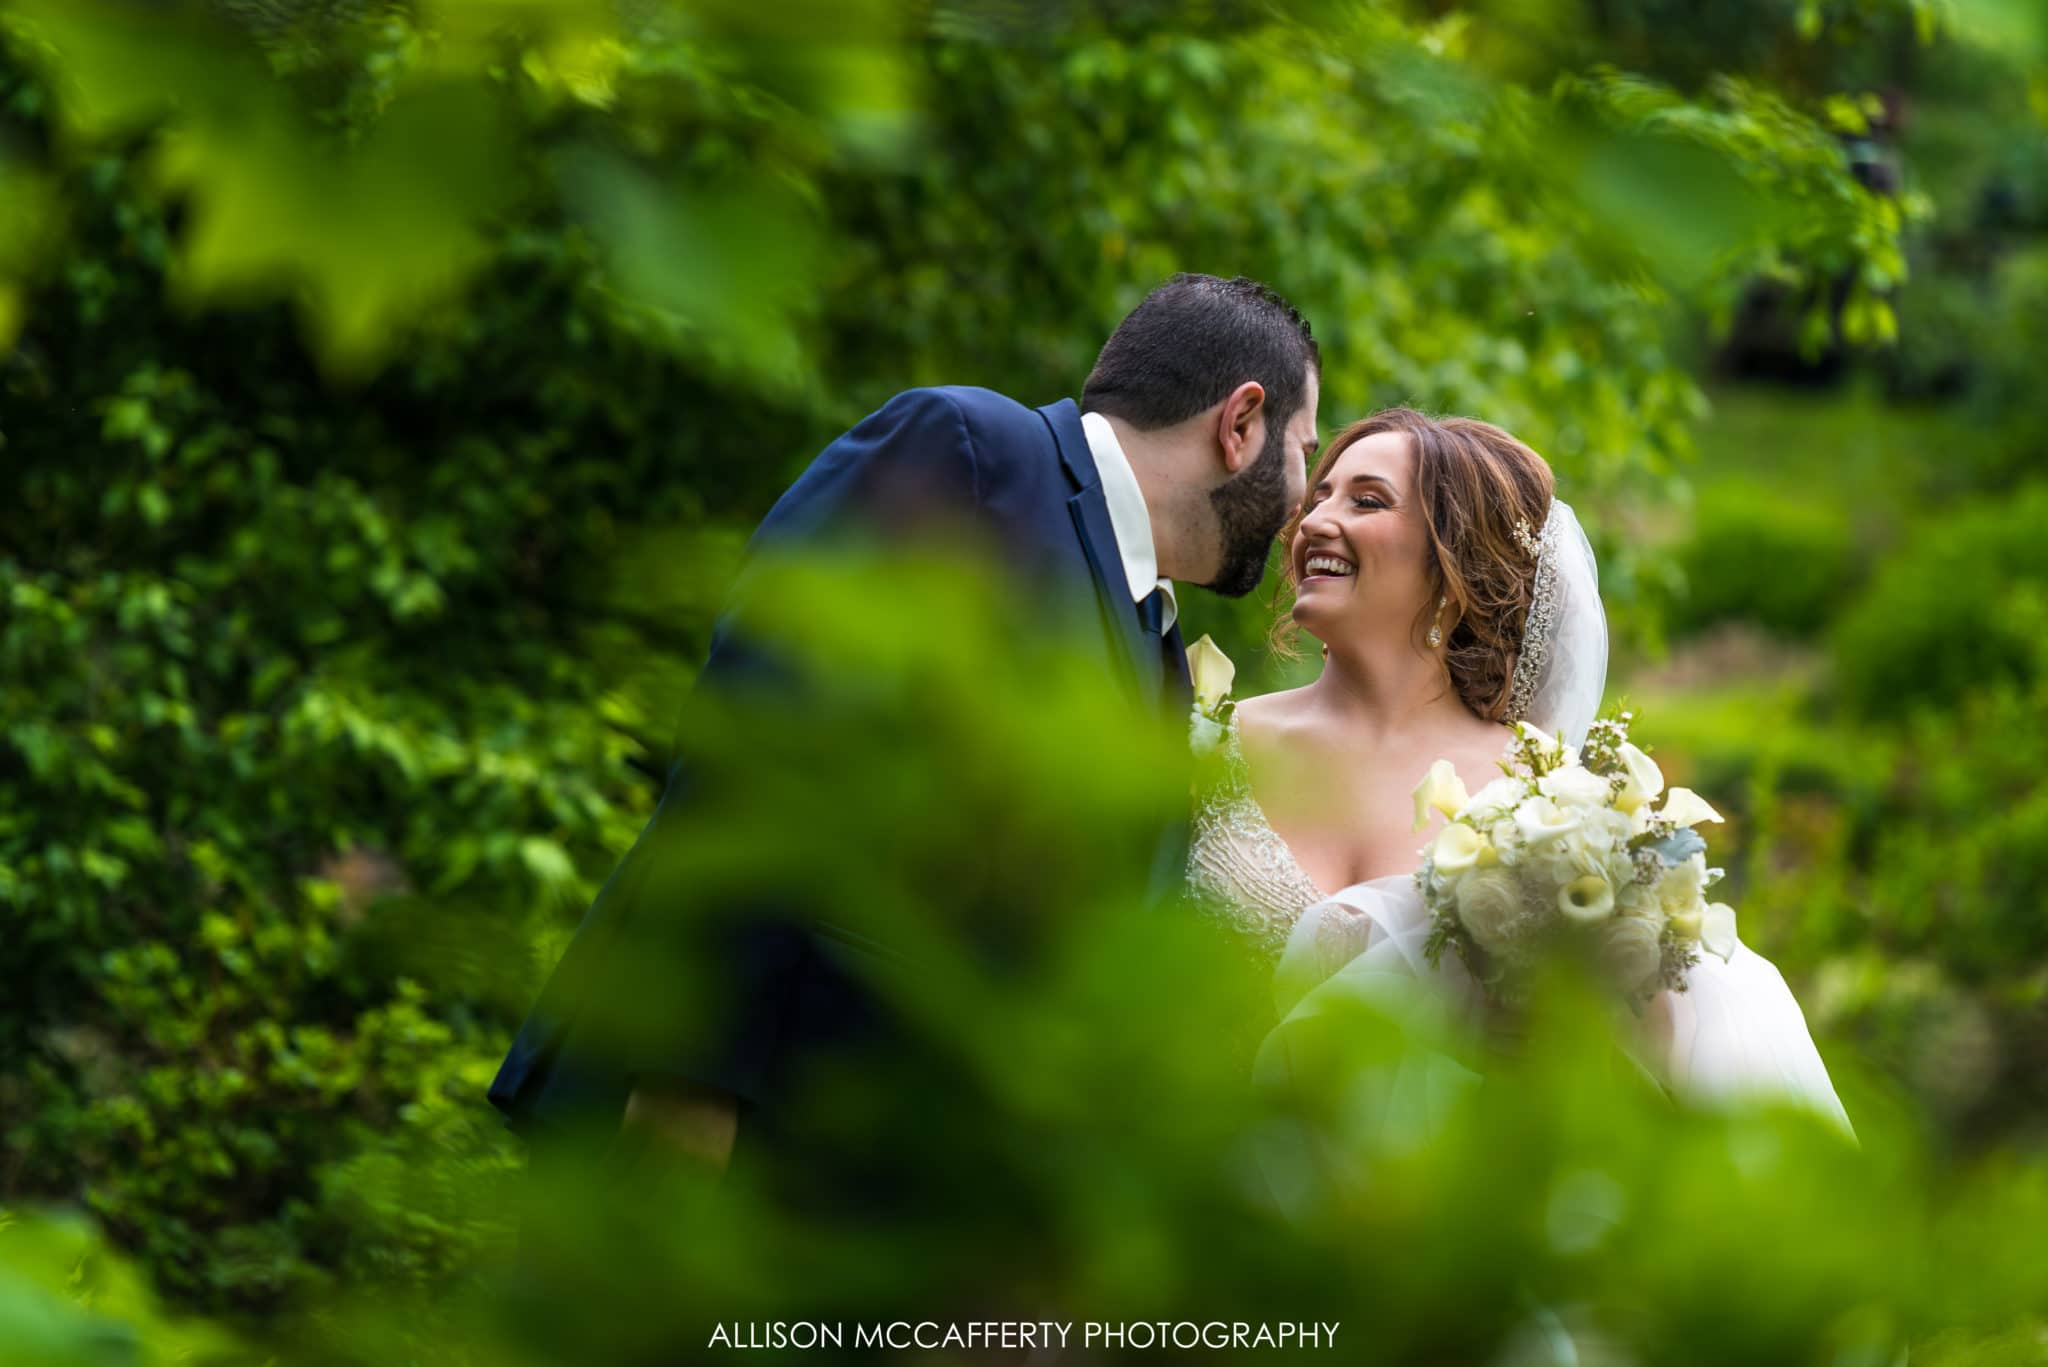 Spring wedding at Reeves-Reed Arboretum